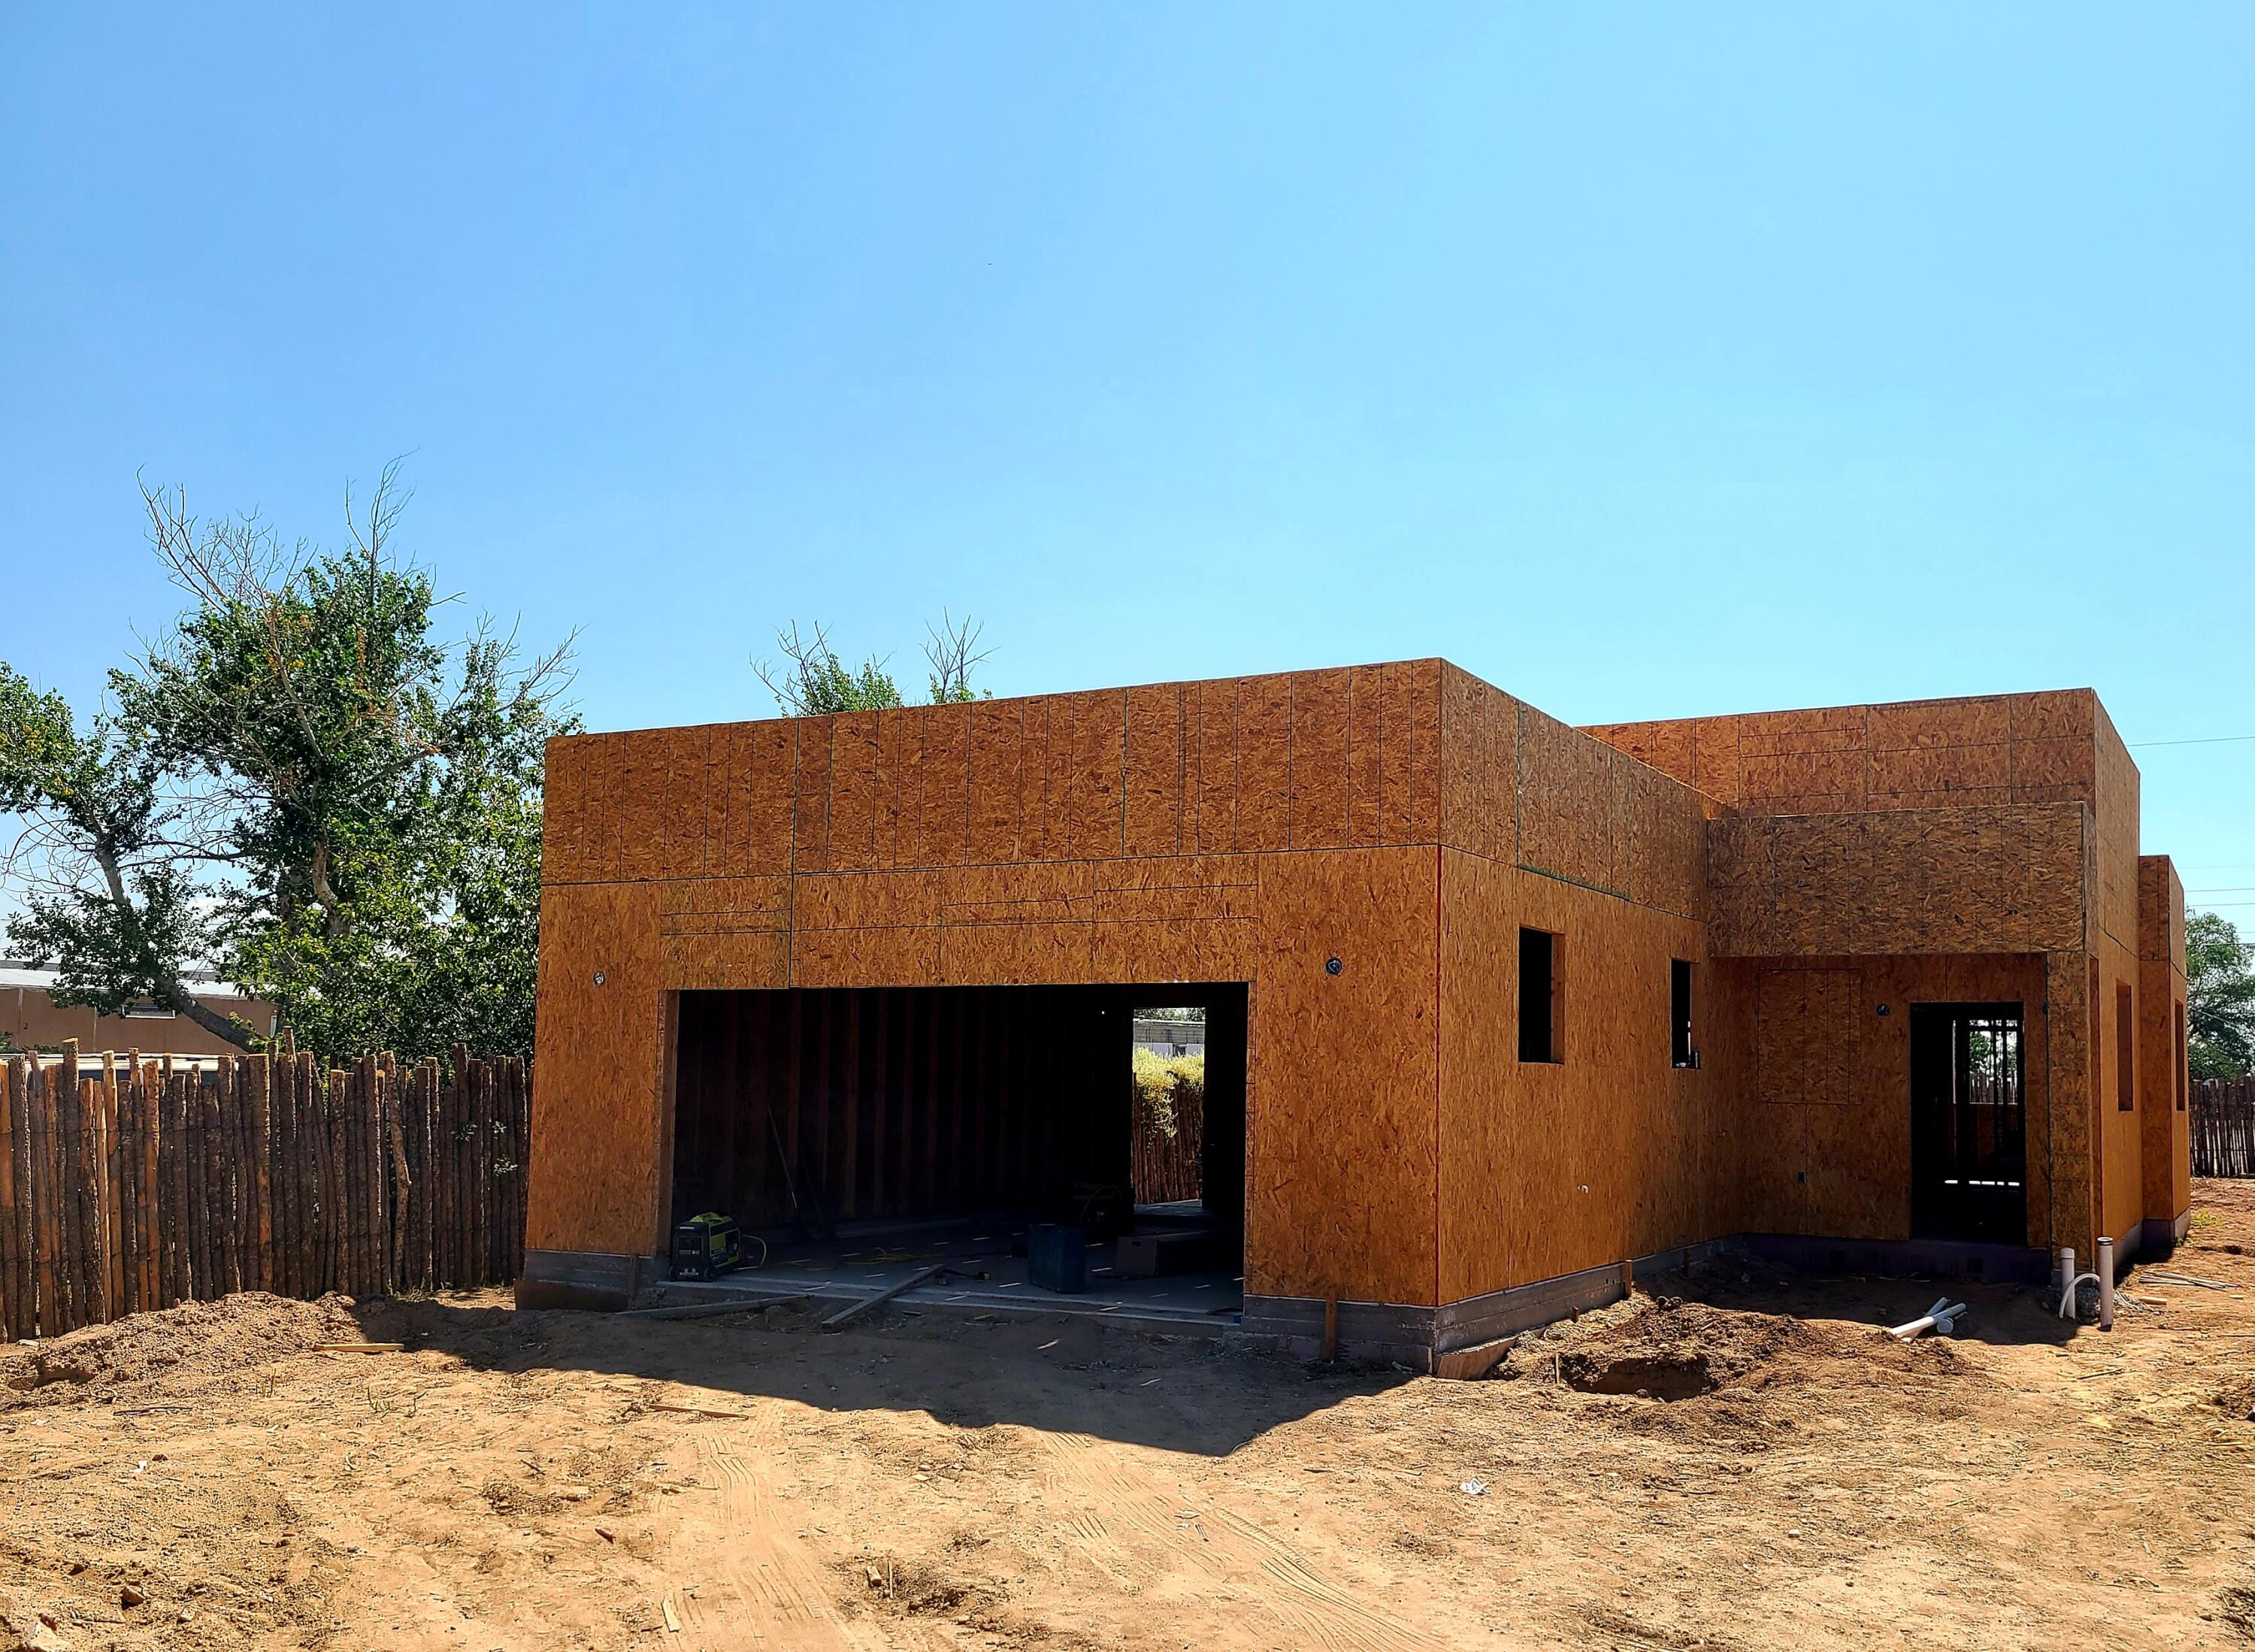 Here's your chance to own a BRAND NEW BUILD in the North Valley! 3 bedroom, 2 bathroom, 2 car garage, New Mexico style home with opportunities to customize and make it your own! PPO, flat roof, wood construction cabinets - no particle board. Granite counter tops, tile floors. 10' ceilings in common areas. Landscaped. Appliance package includes stove, fridge, dishwasher and microwave hood. *Estimated completion date is June 2021*Subject to change*